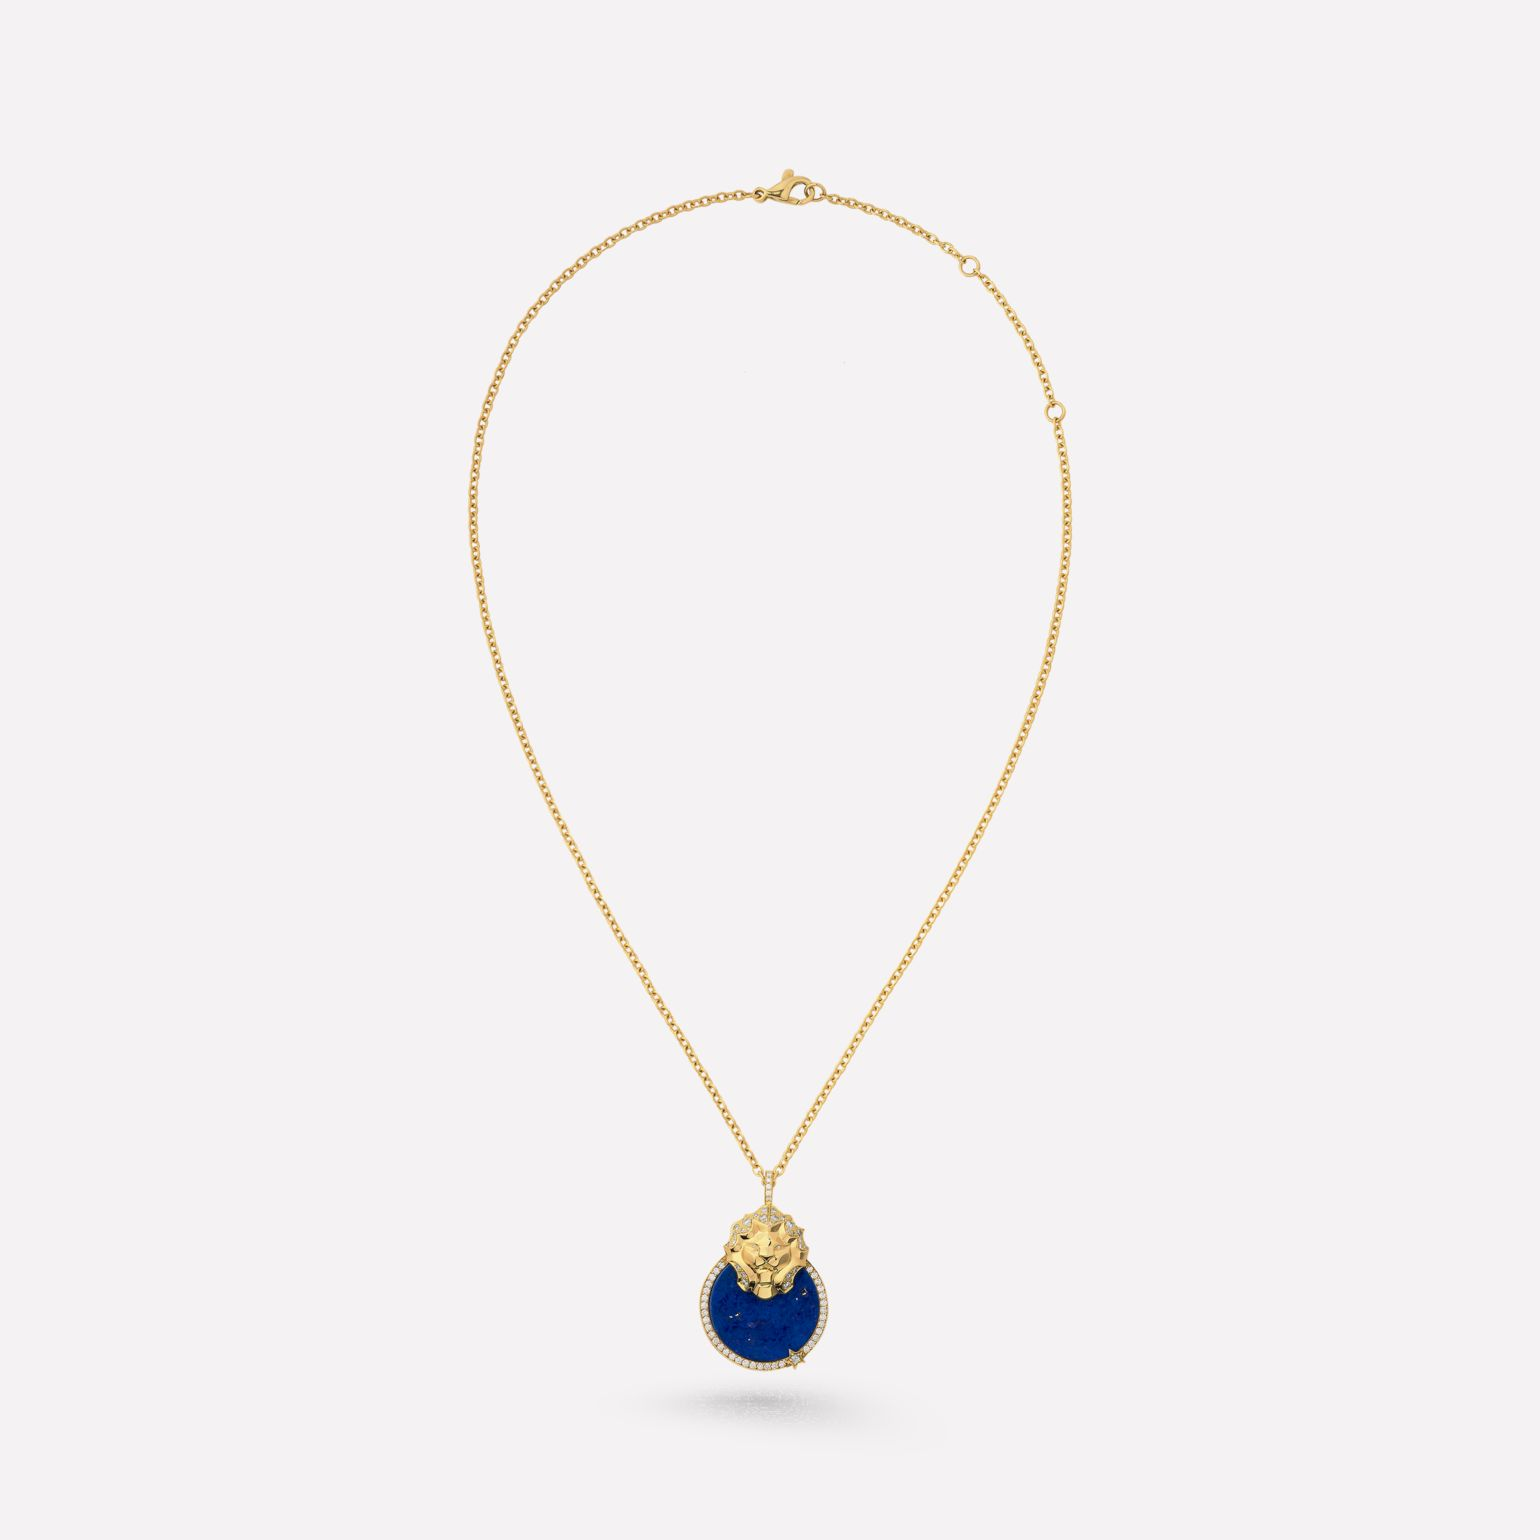 Sous le Signe du Lion necklace Lion Médaille necklace in 18K yellow gold, diamonds and lapis lazuli